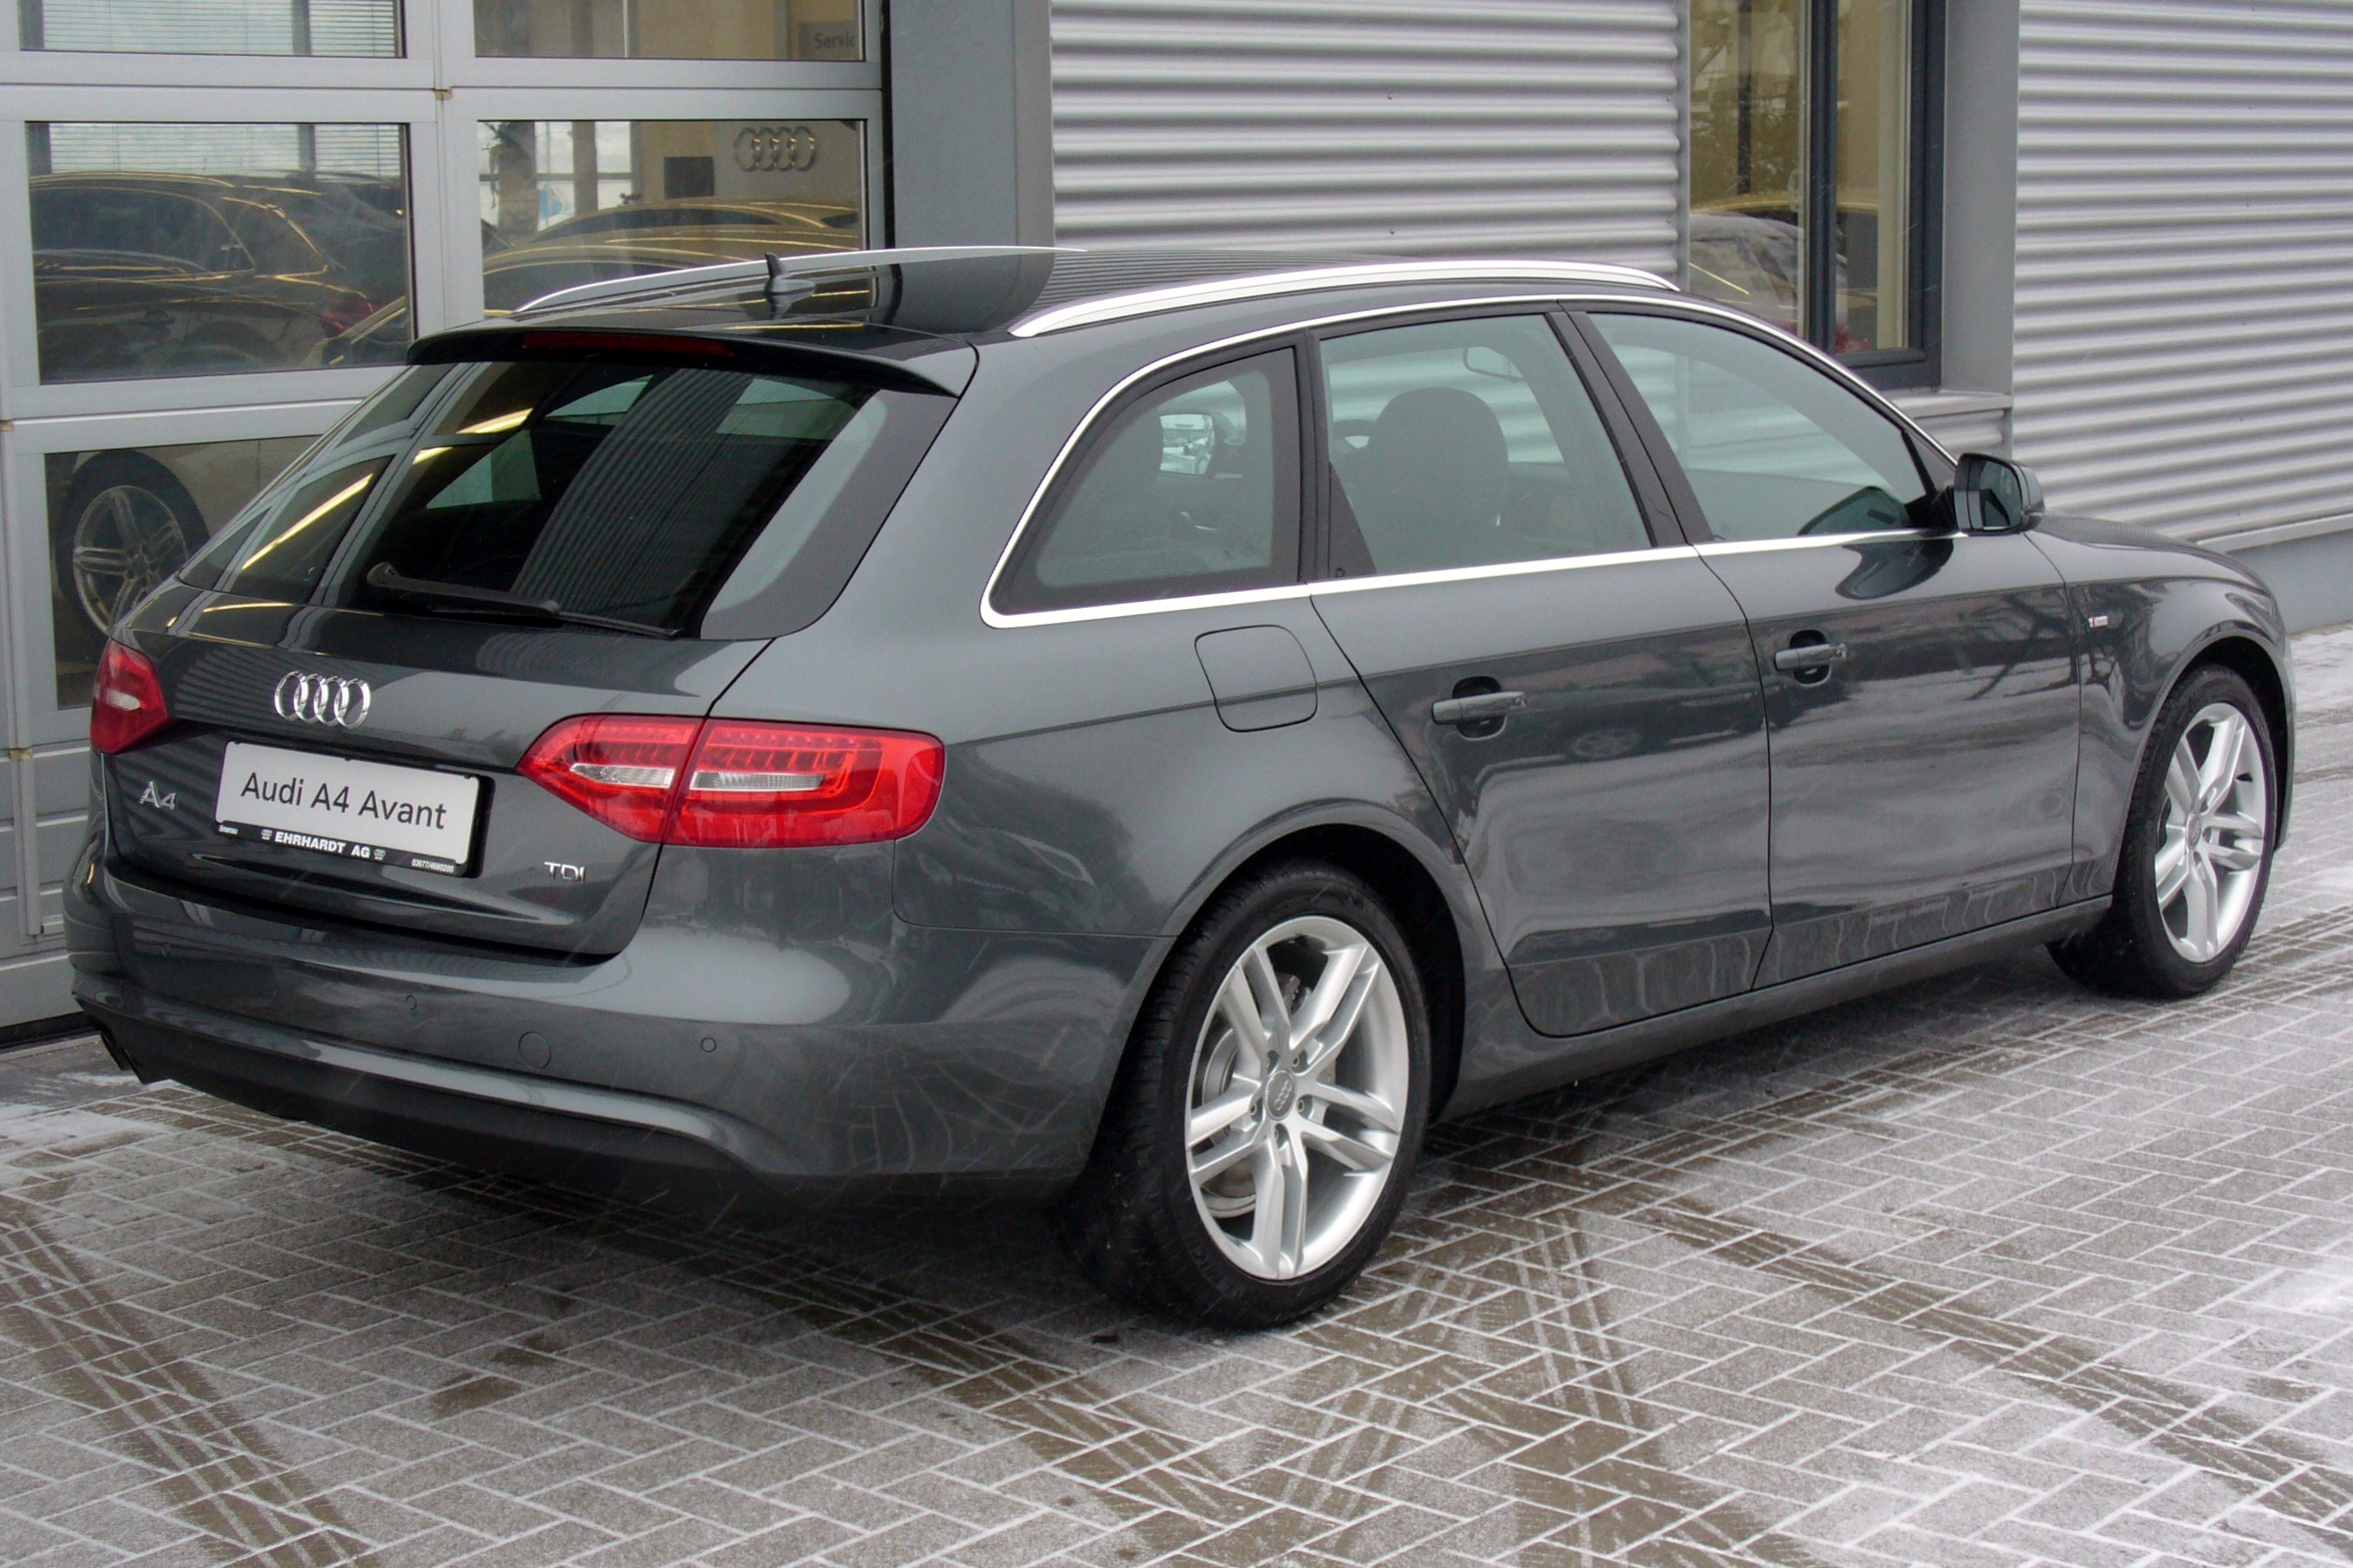 datei audi a4 b8 facelift avant ambition s line 2 0 tdi. Black Bedroom Furniture Sets. Home Design Ideas